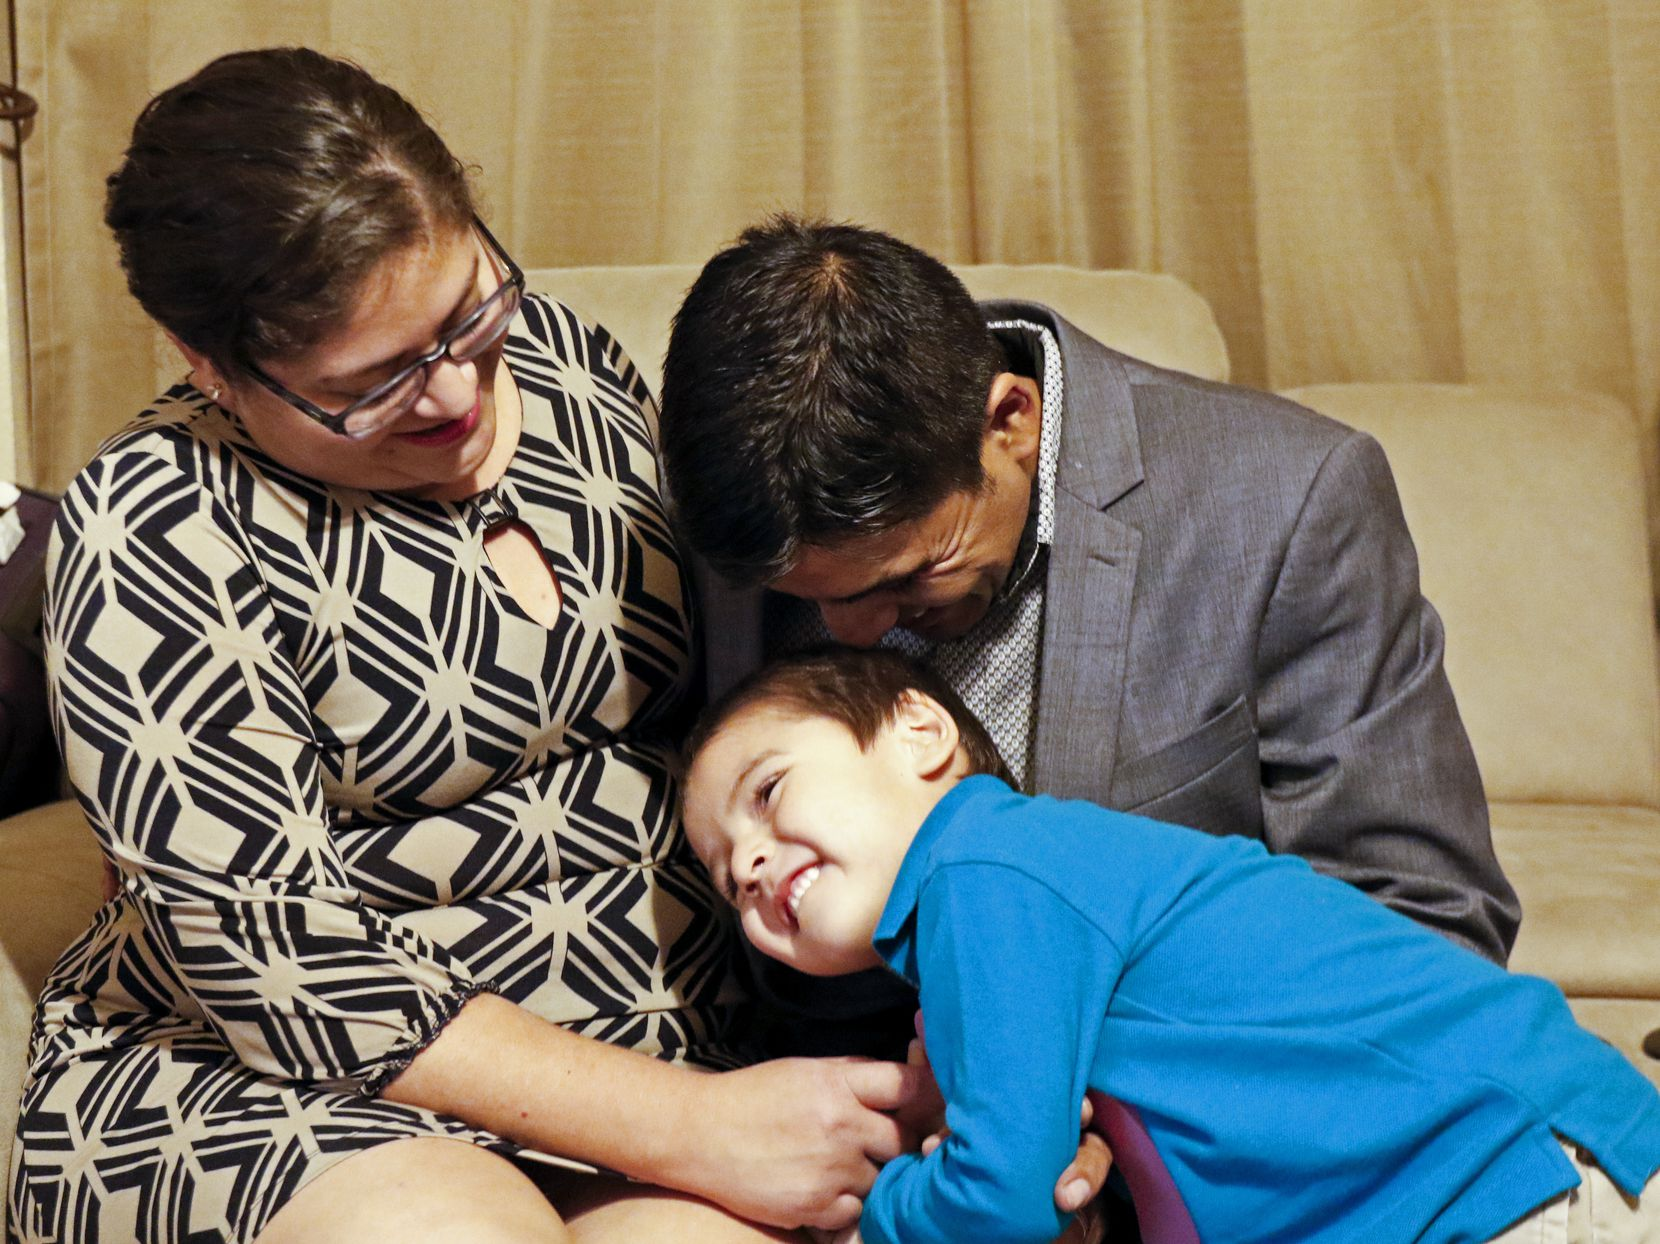 Laura Malagon, 28, Marco Antonio Malagon Sanchez, 37 and Marco Jesus Malagon Mendoza, 4, laugh in their home in Dallas on Thursday, November 21, 2019. Marco Malagon got legal status through his wife. In about a year, he will begin applying for citizenship, but the process is getting a lot more expensive.